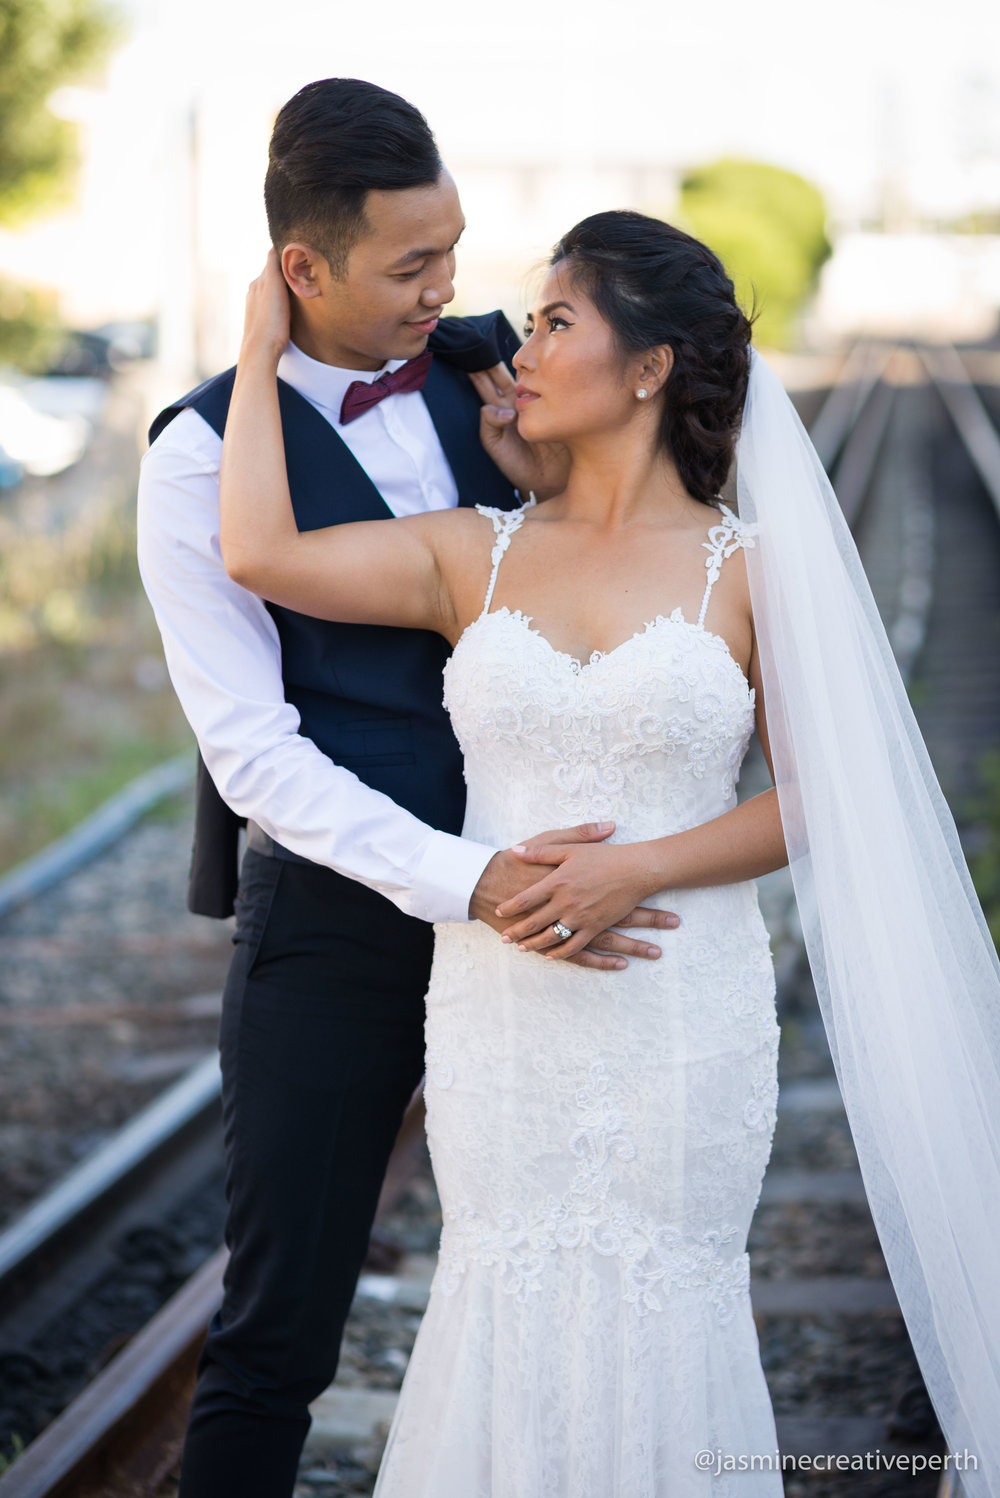 engagement_couple_photography_perth (13 of 12).jpg